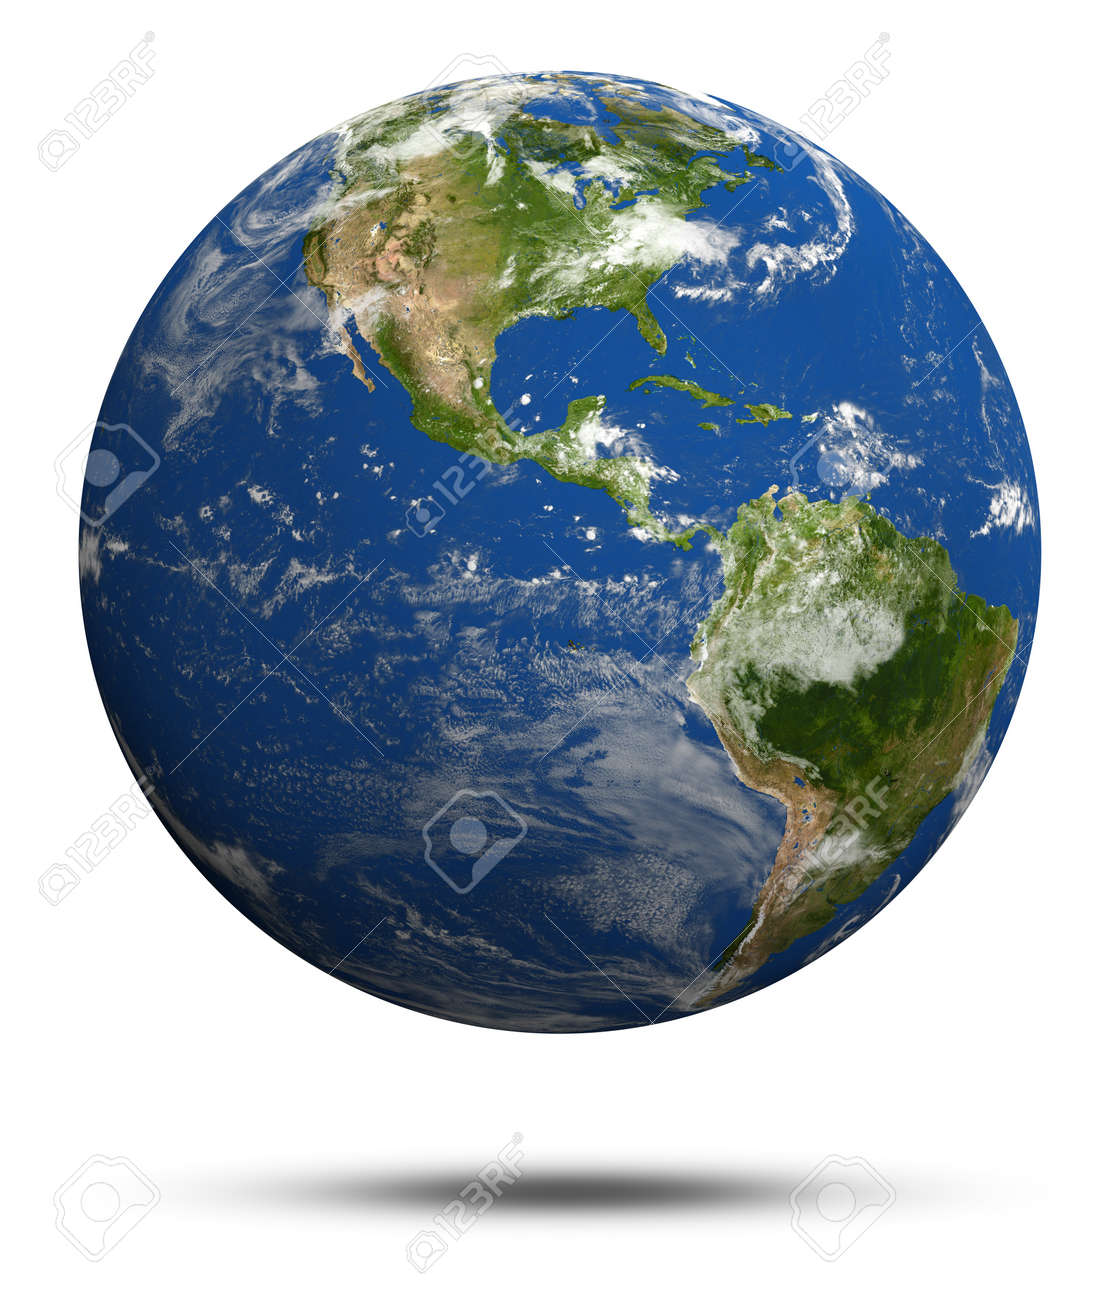 Planet earth 3d render earth globe model maps courtesy of nasa planet earth 3d render earth globe model maps courtesy of nasa stock photo gumiabroncs Image collections